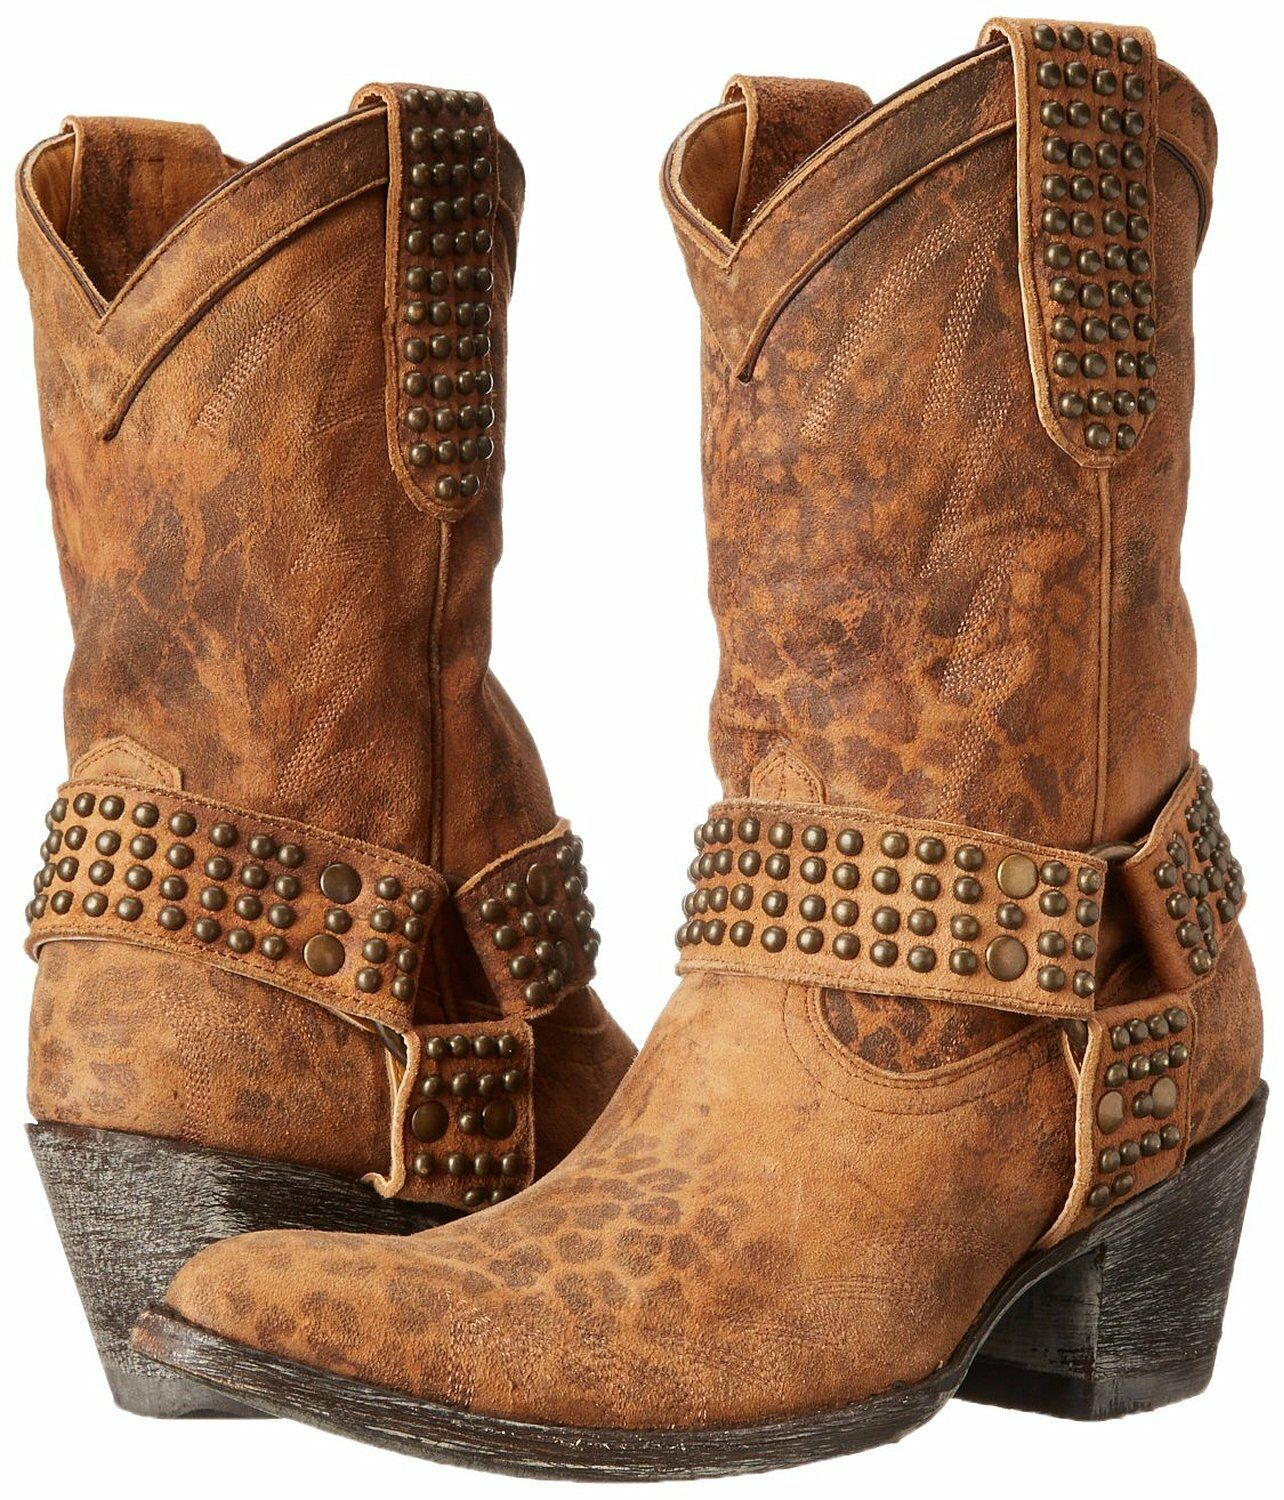 NEW in Box Old Gringo Women's Cowgirl Western Boot Ochre L2001-4 Size 7 $ 600!